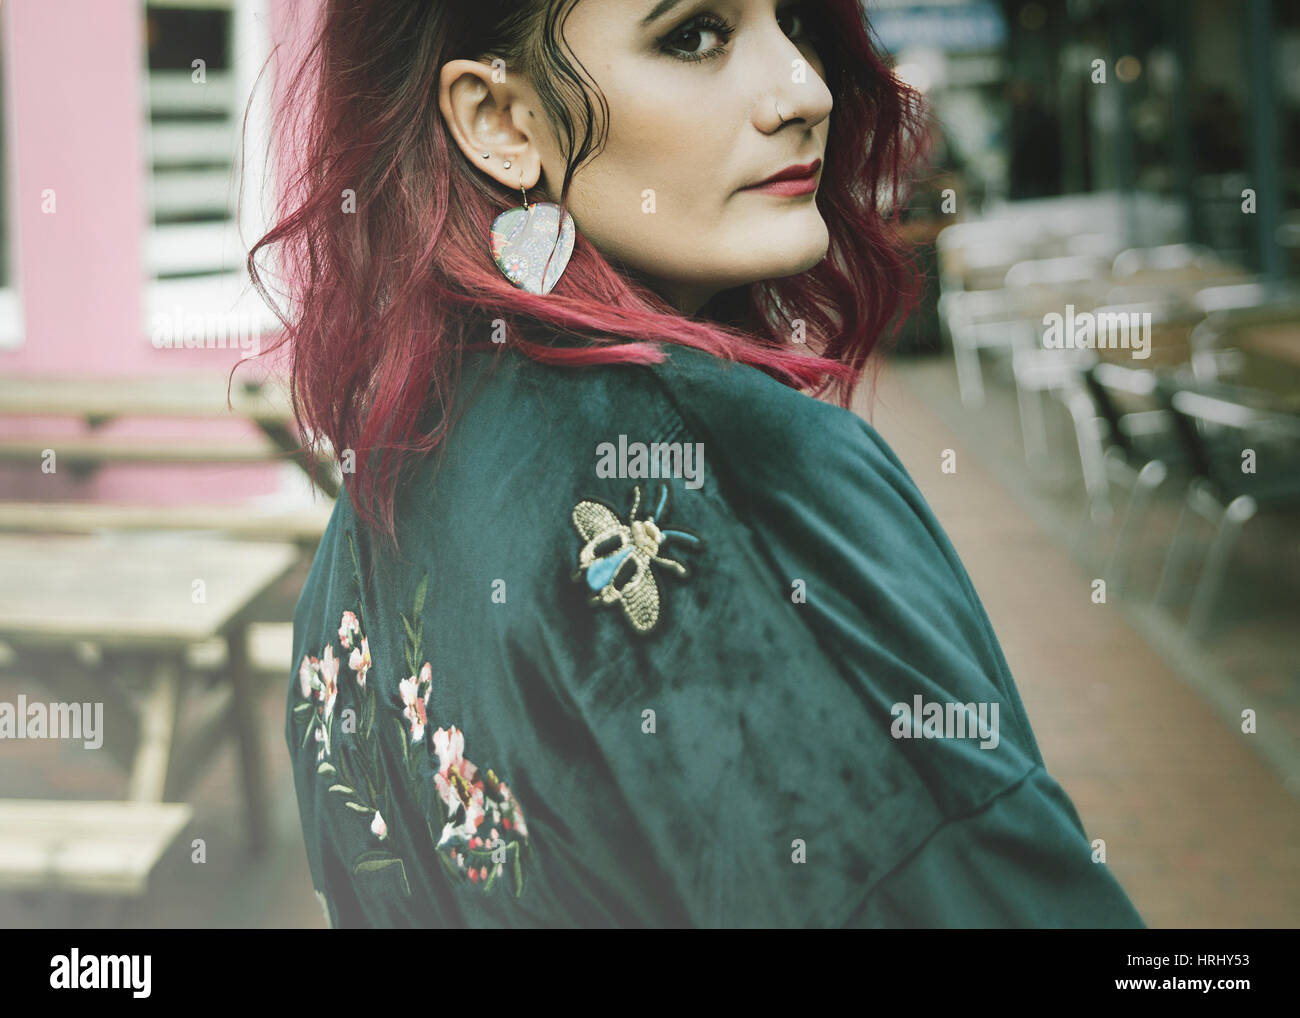 Woman with pink hair and brown eyes - Stock Image